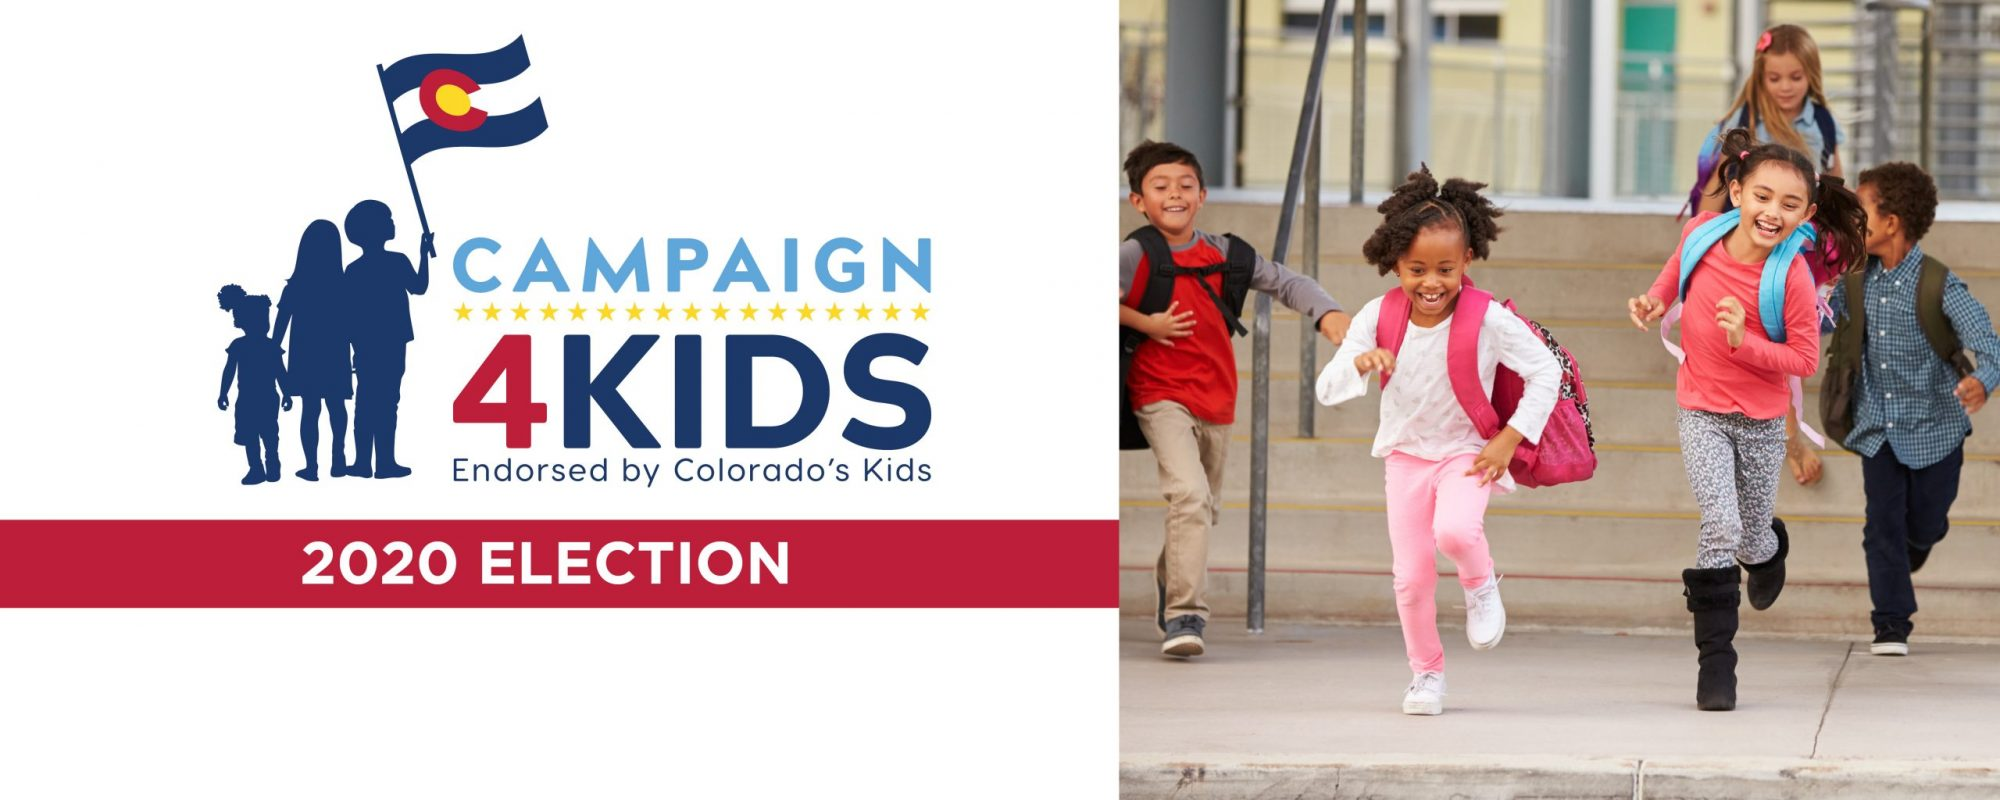 Campaign for kids 2020